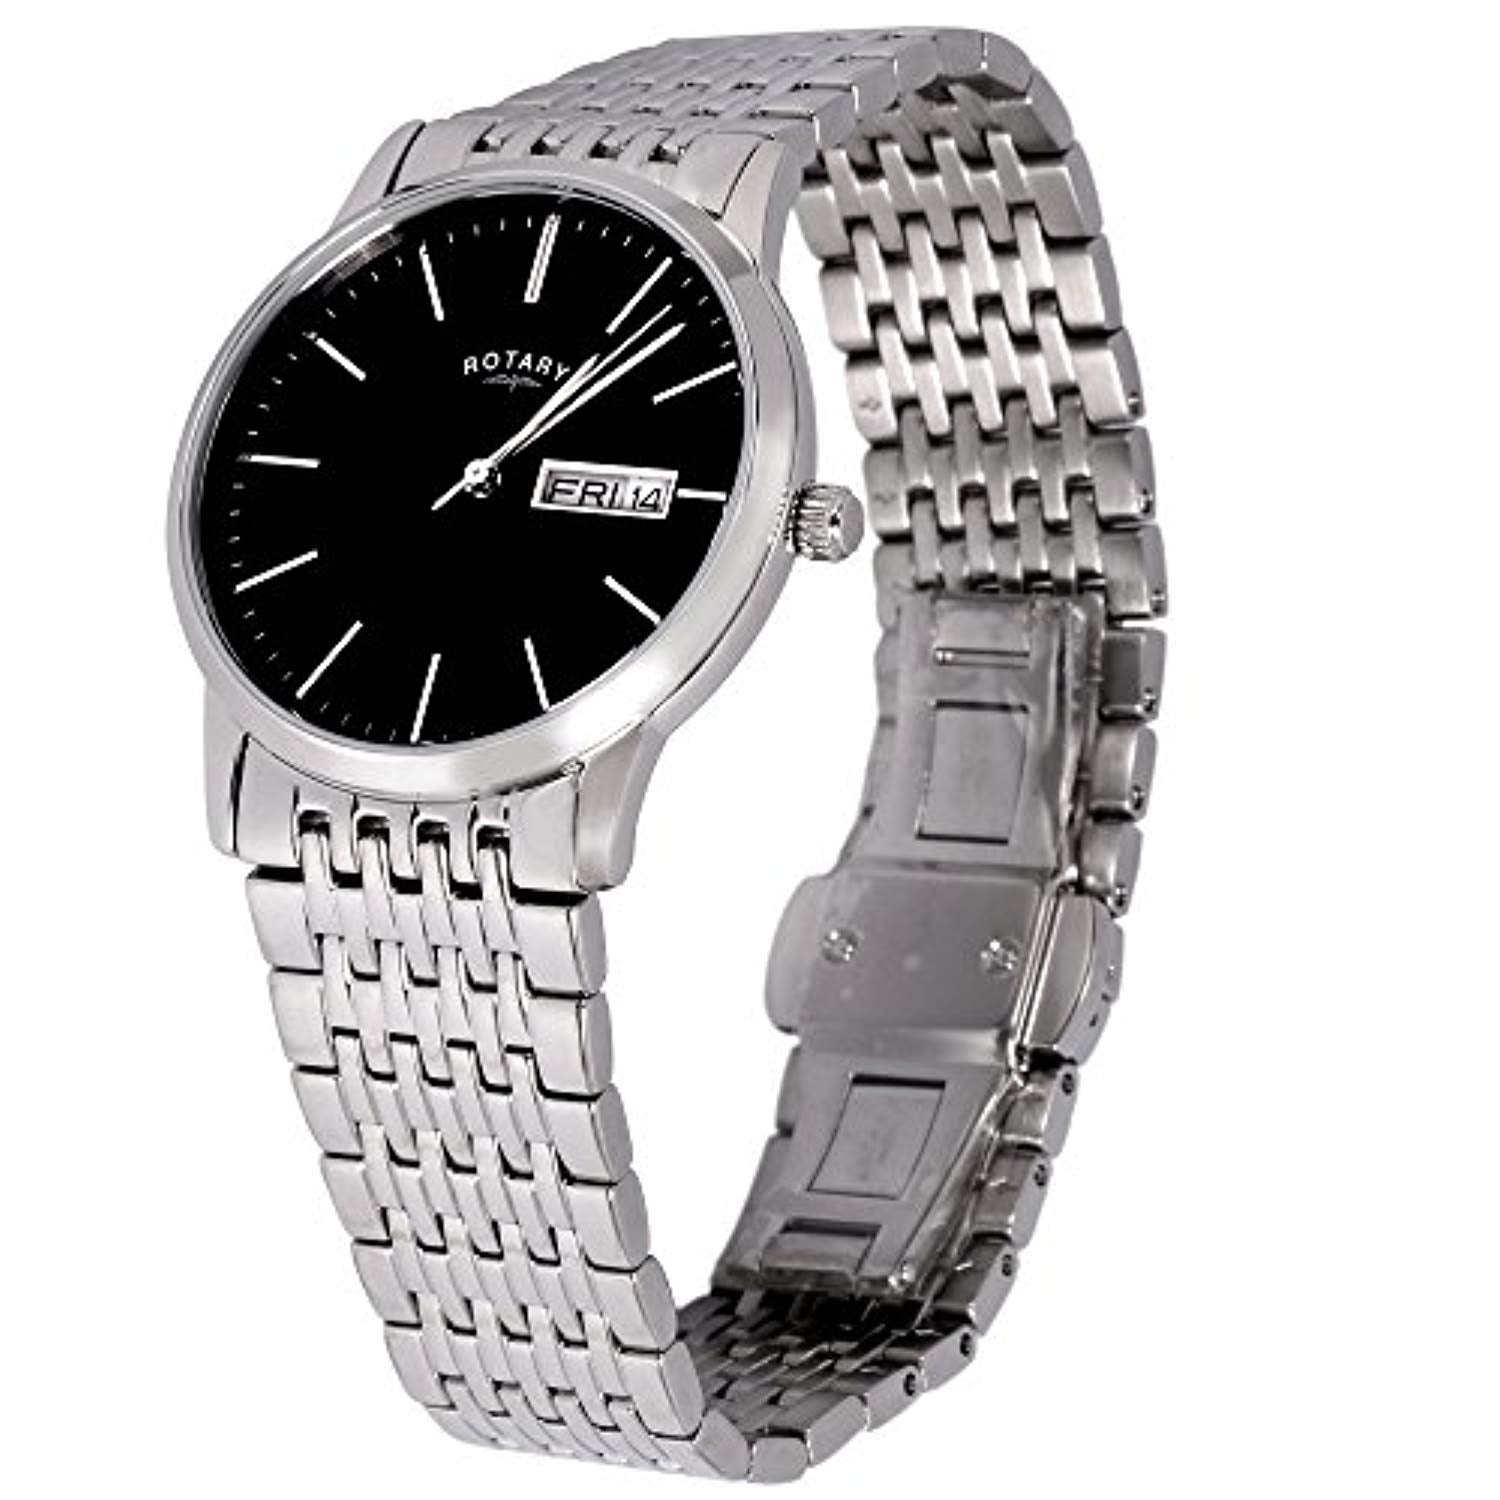 Gents Stainless Steel Classic Rotary Watch one left